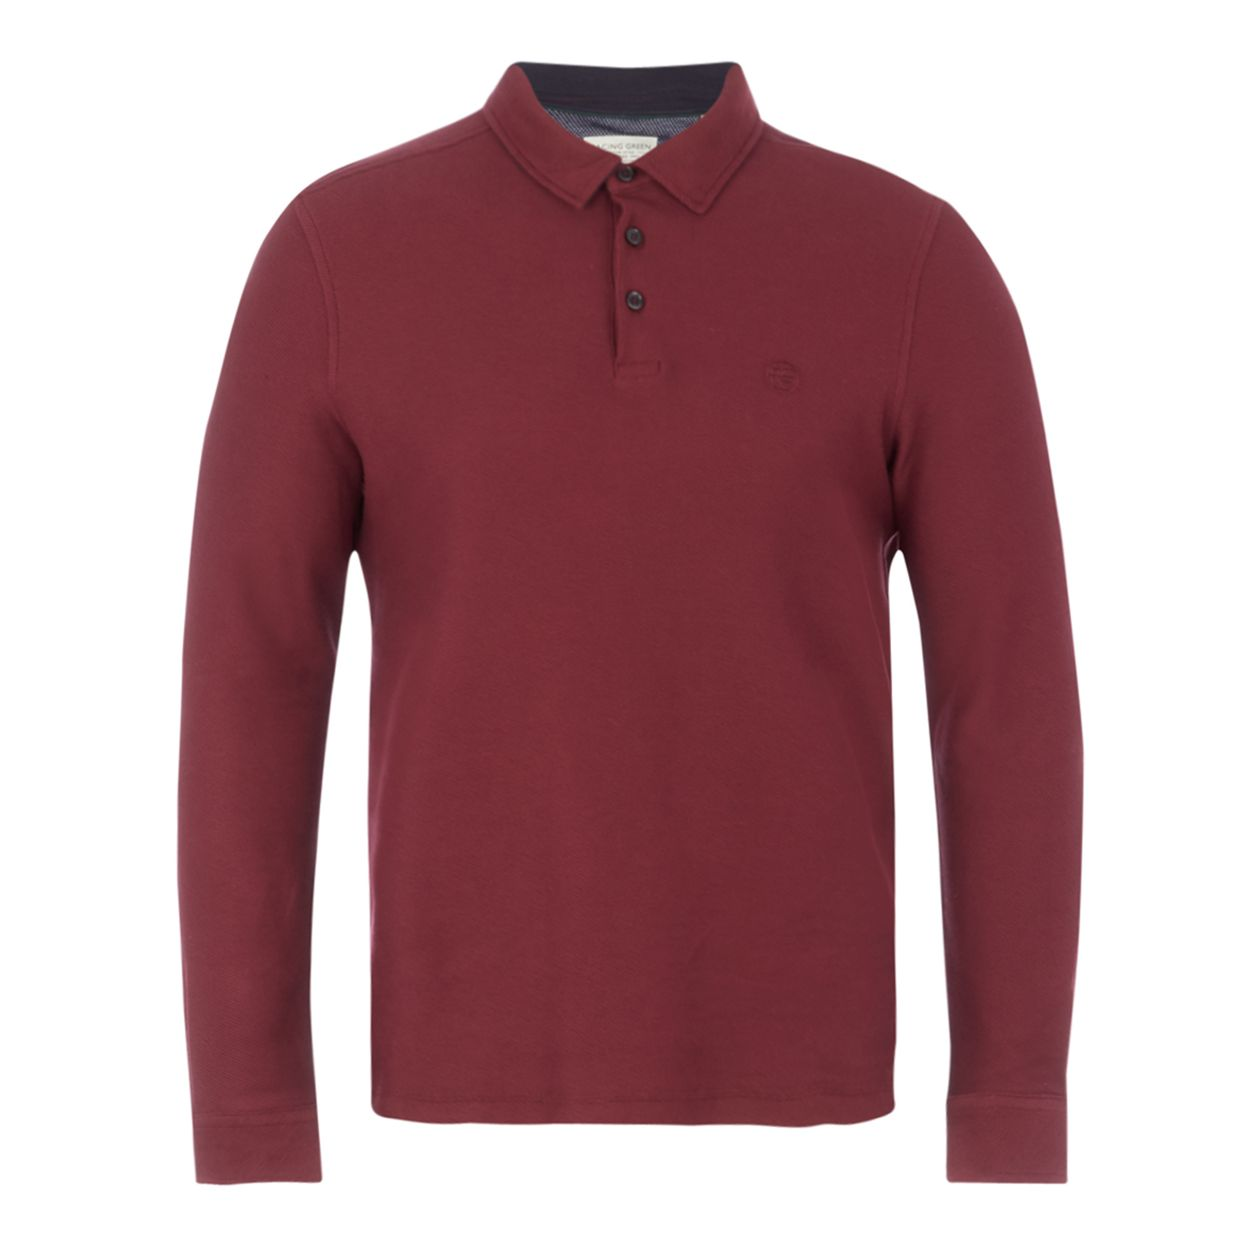 Racing Green Dark red twill long sleeve polo shirt